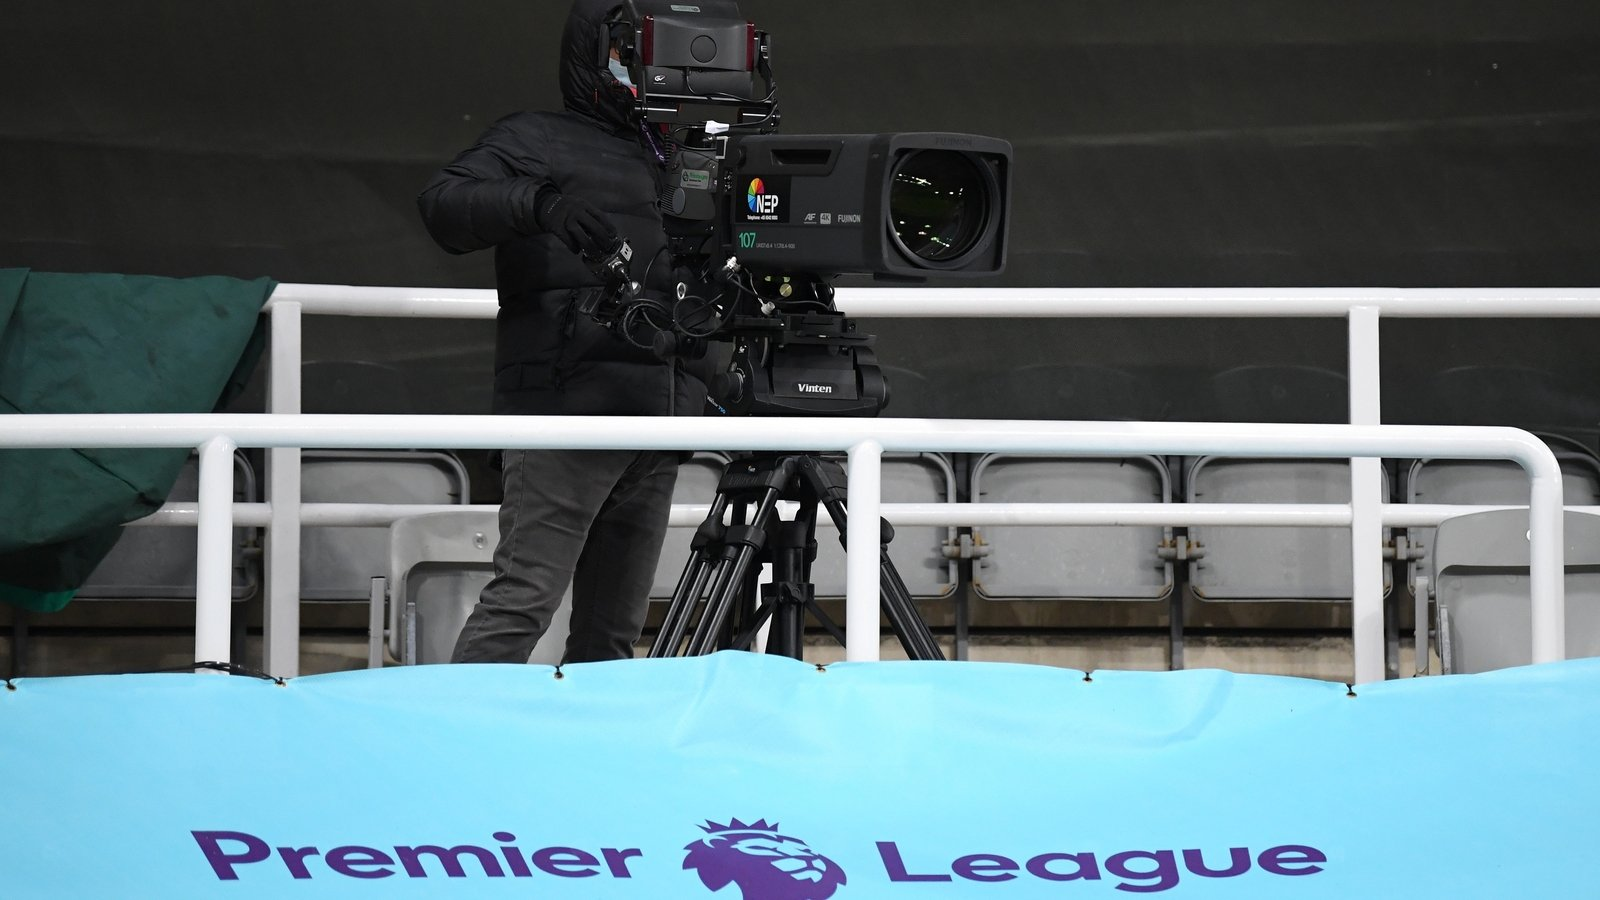 Premier League serve to shut down illegal streaming app